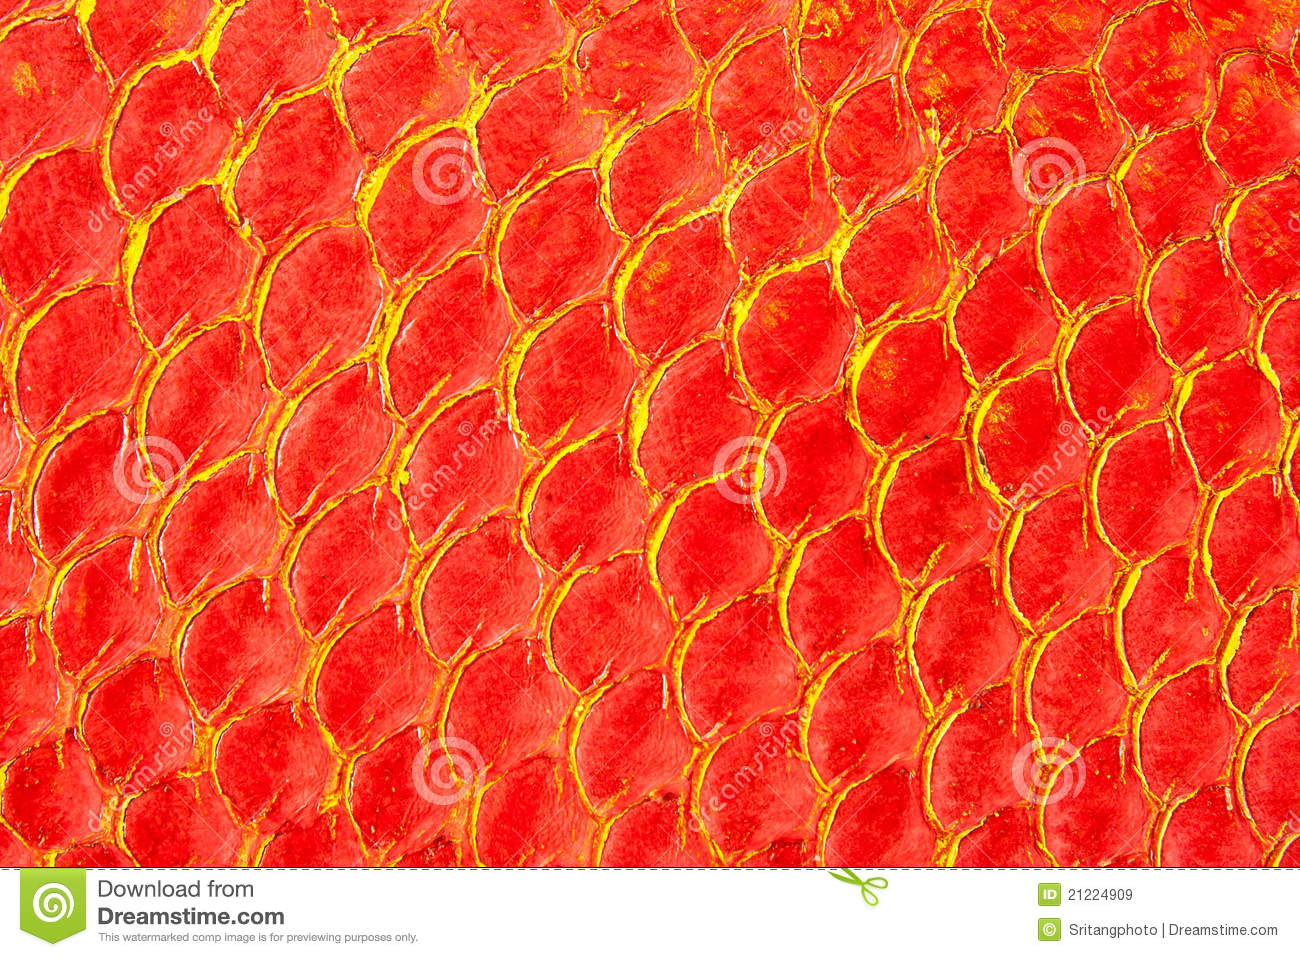 Texture Of Red Fish Skin Royalty Free Stock Images - Image: 21224909